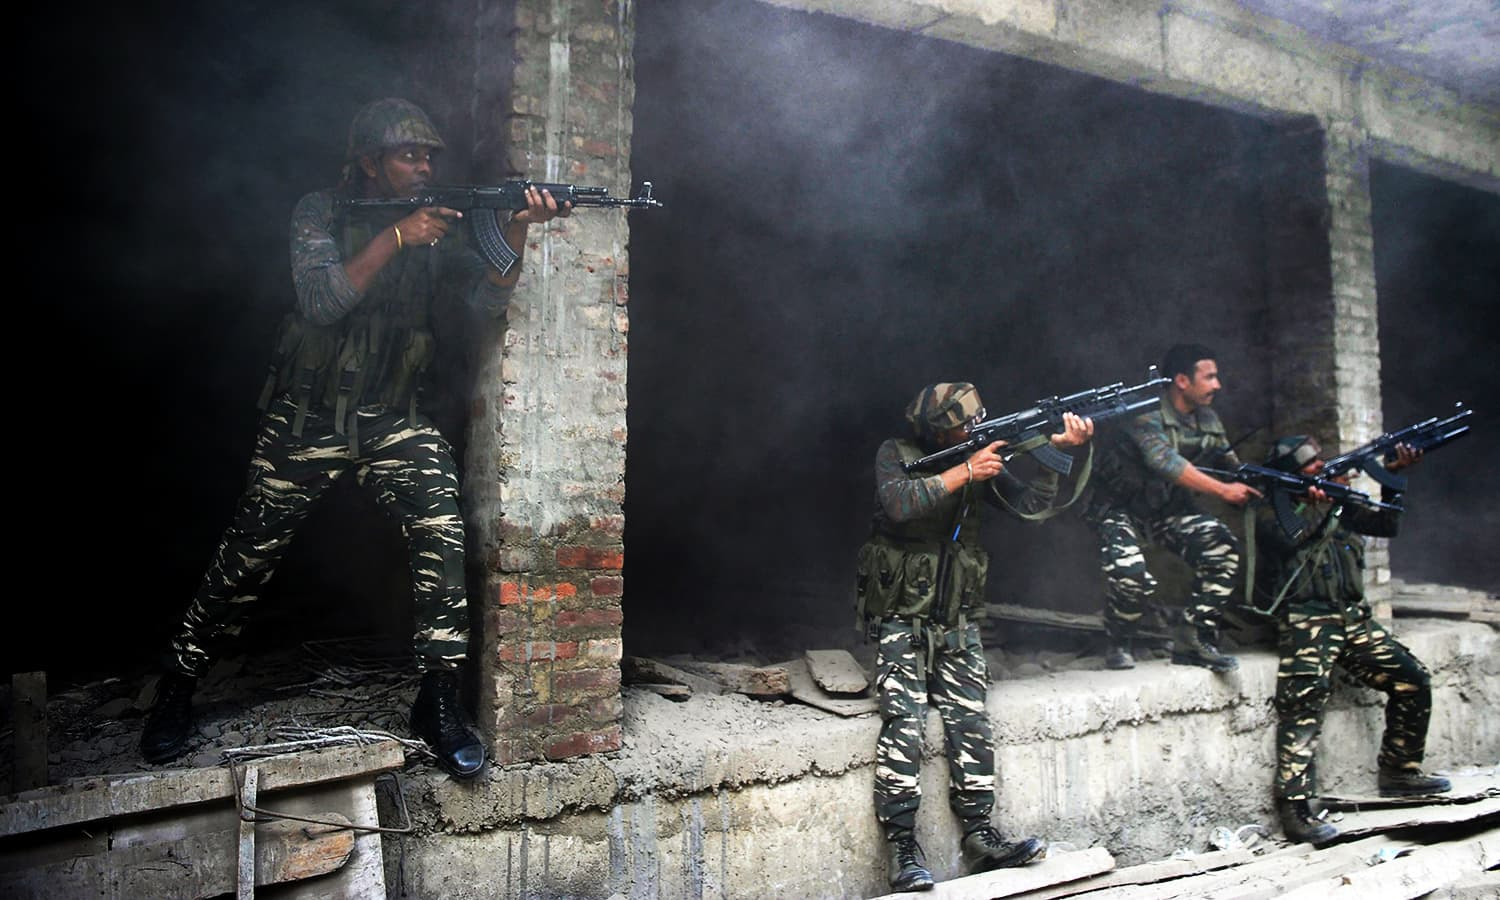 Indian army troops take position inside a building after a gunfight in Srinagar on August 15, 2016. — AFP